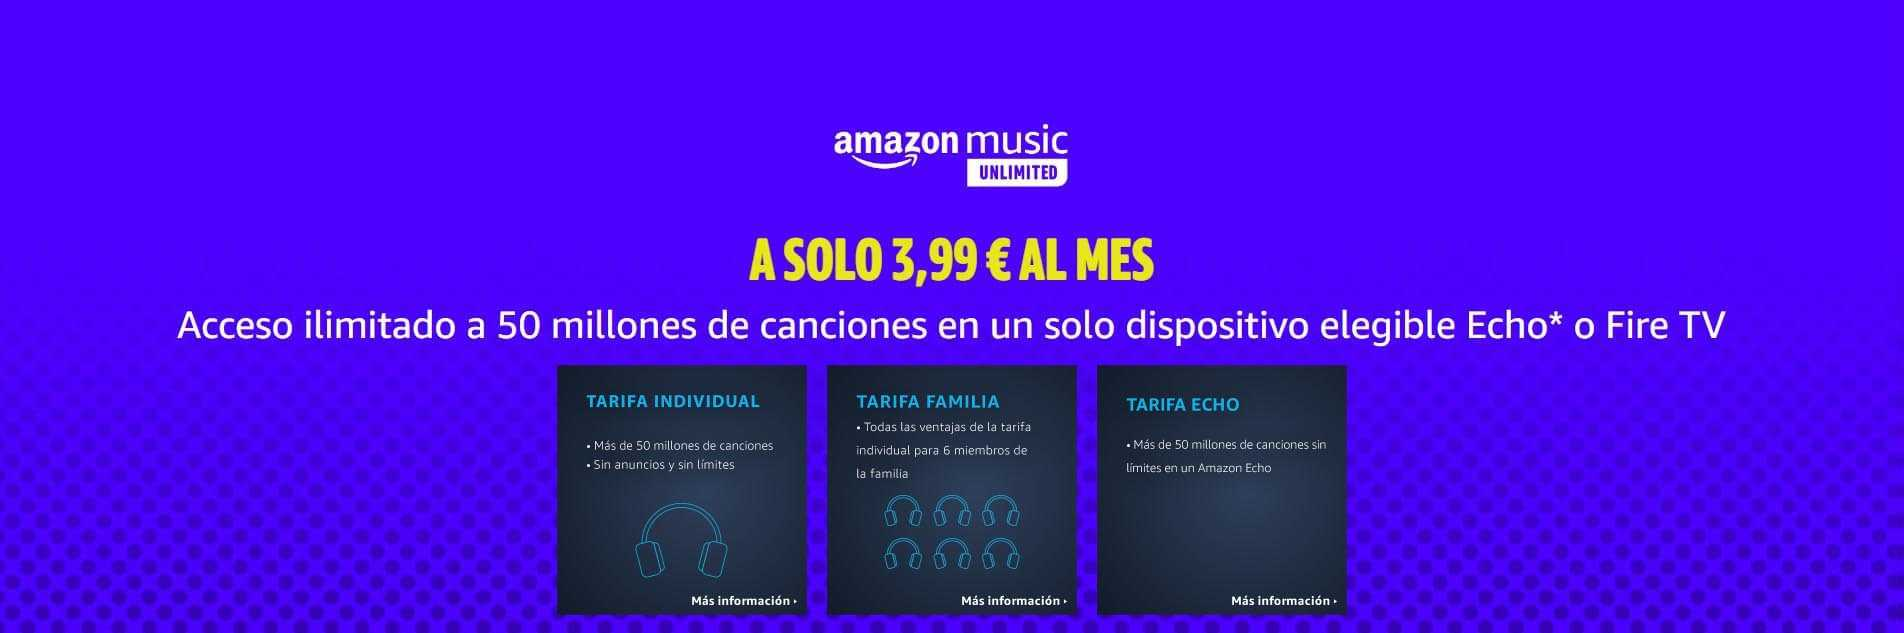 Precio de Amazon Music Unlimited